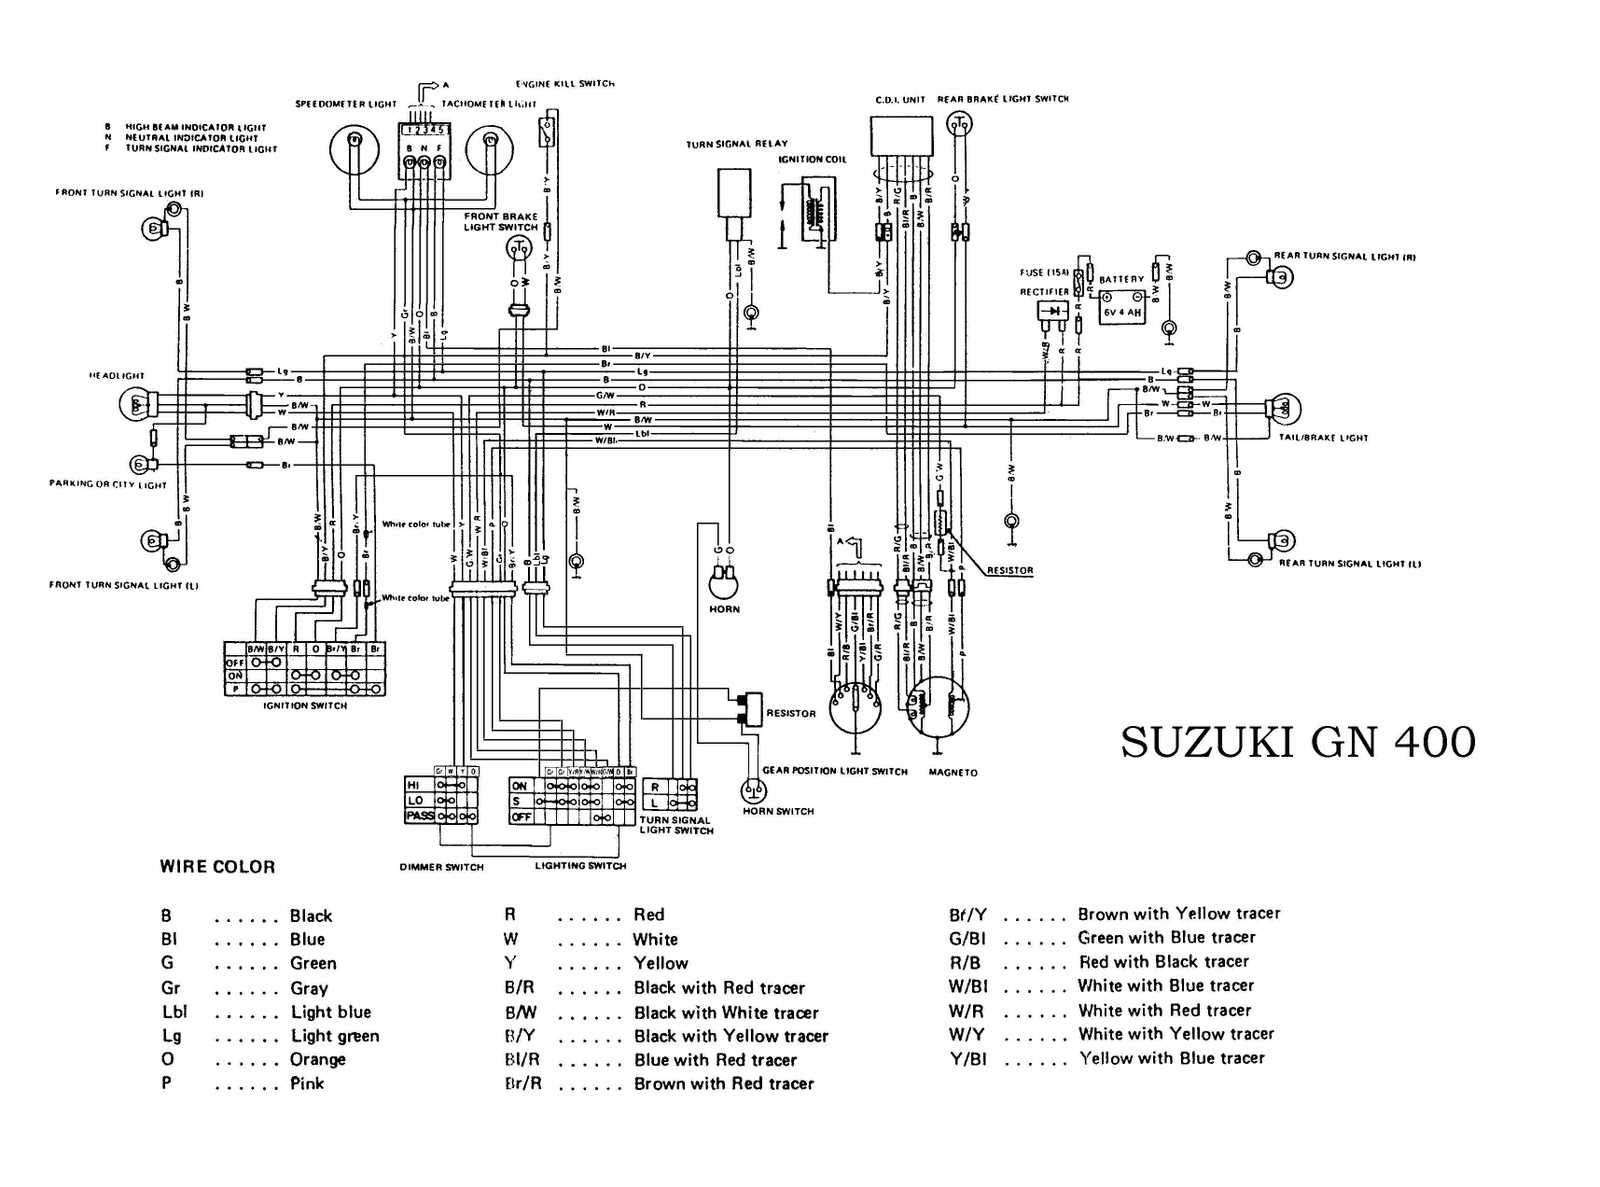 Suzuki+GN400+Electrical+Wiring+Diagram e67 wiring diagram smart car diagrams \u2022 wiring diagrams j squared co PDM Project Management Diagram at n-0.co